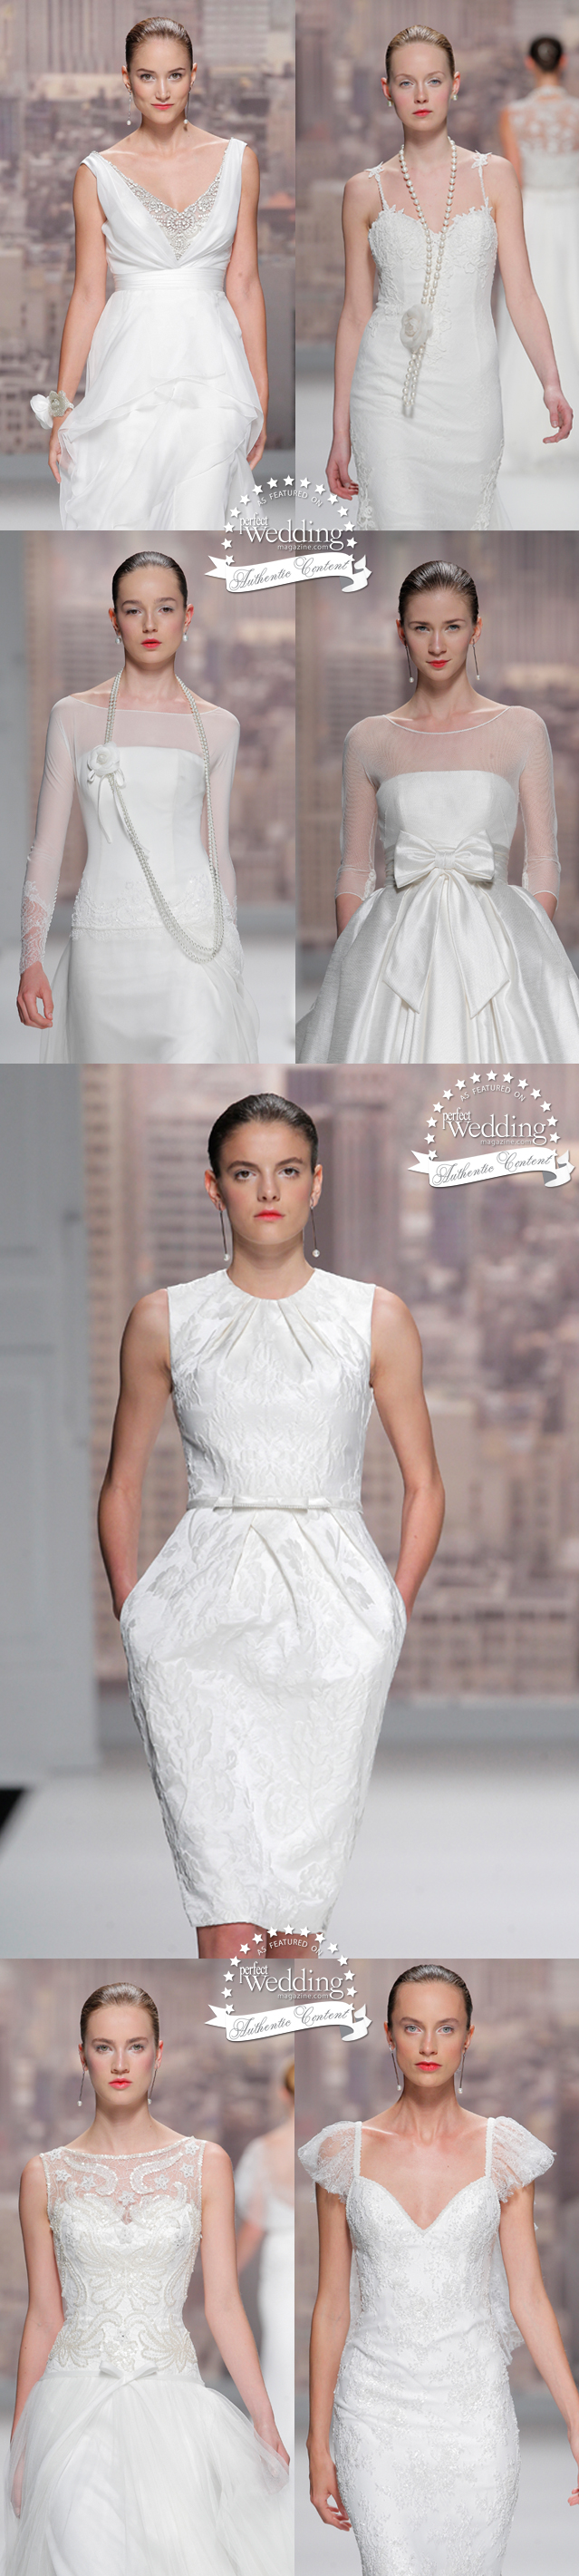 Rosa Clara, Barcelina Bridal Week, 2015 Bridal collections, Perfect Wedding Magazine, Perfect Wedding Blog